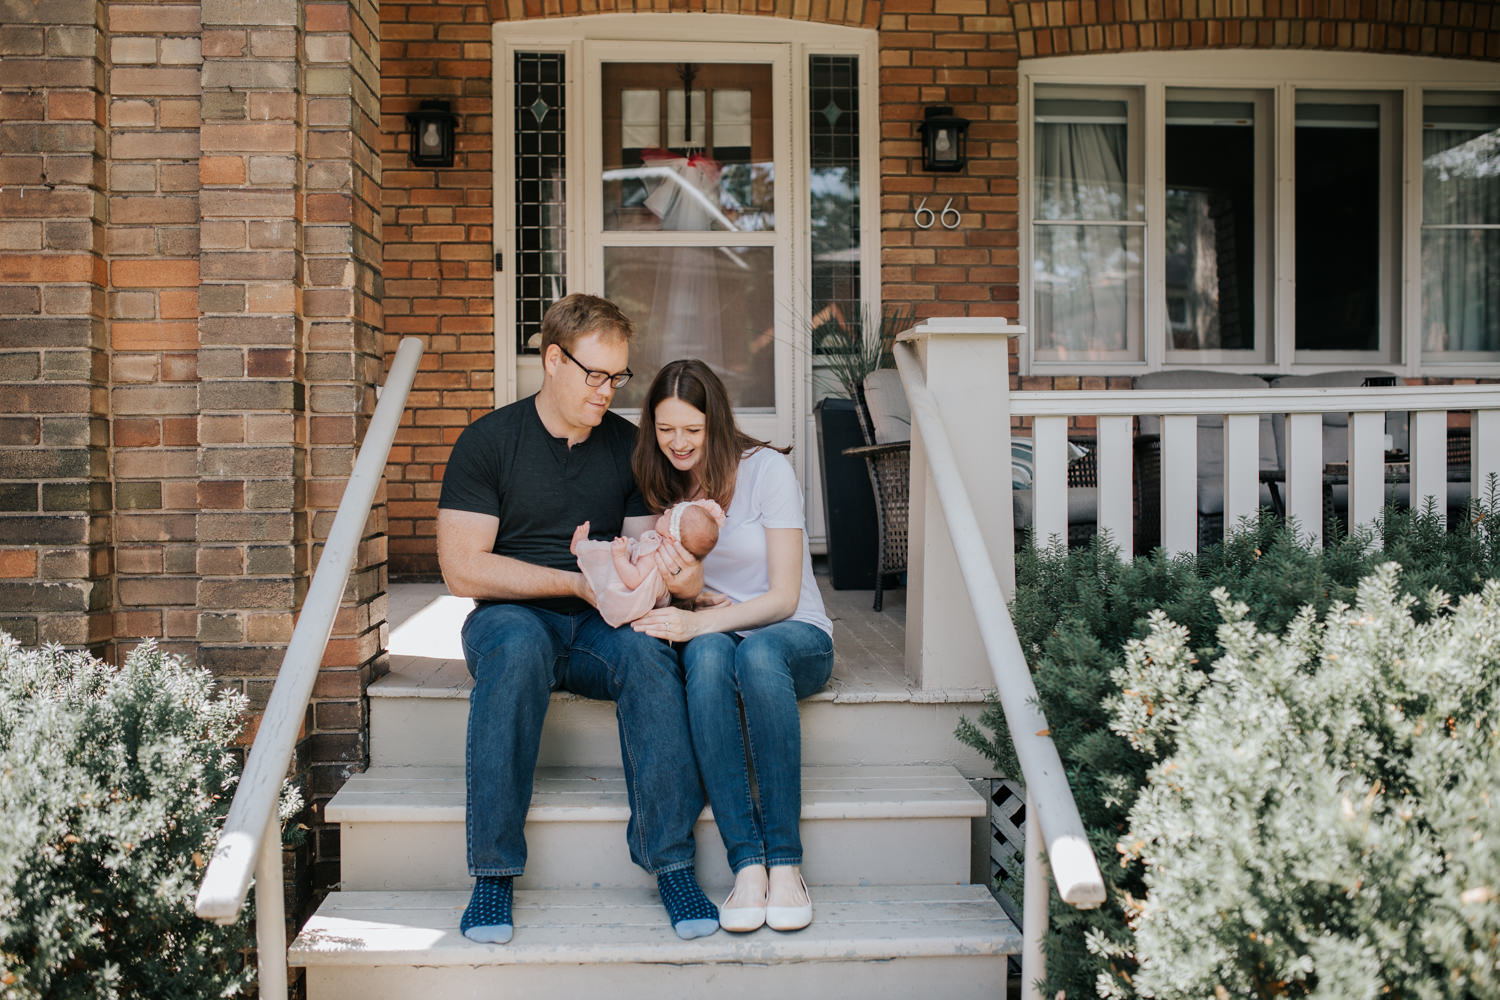 family of 3 sitting on front porch on summer day, dad holding 2 week old baby girl, mom leaning in next to husband smiling at daughter - GTA Lifestyle Photography